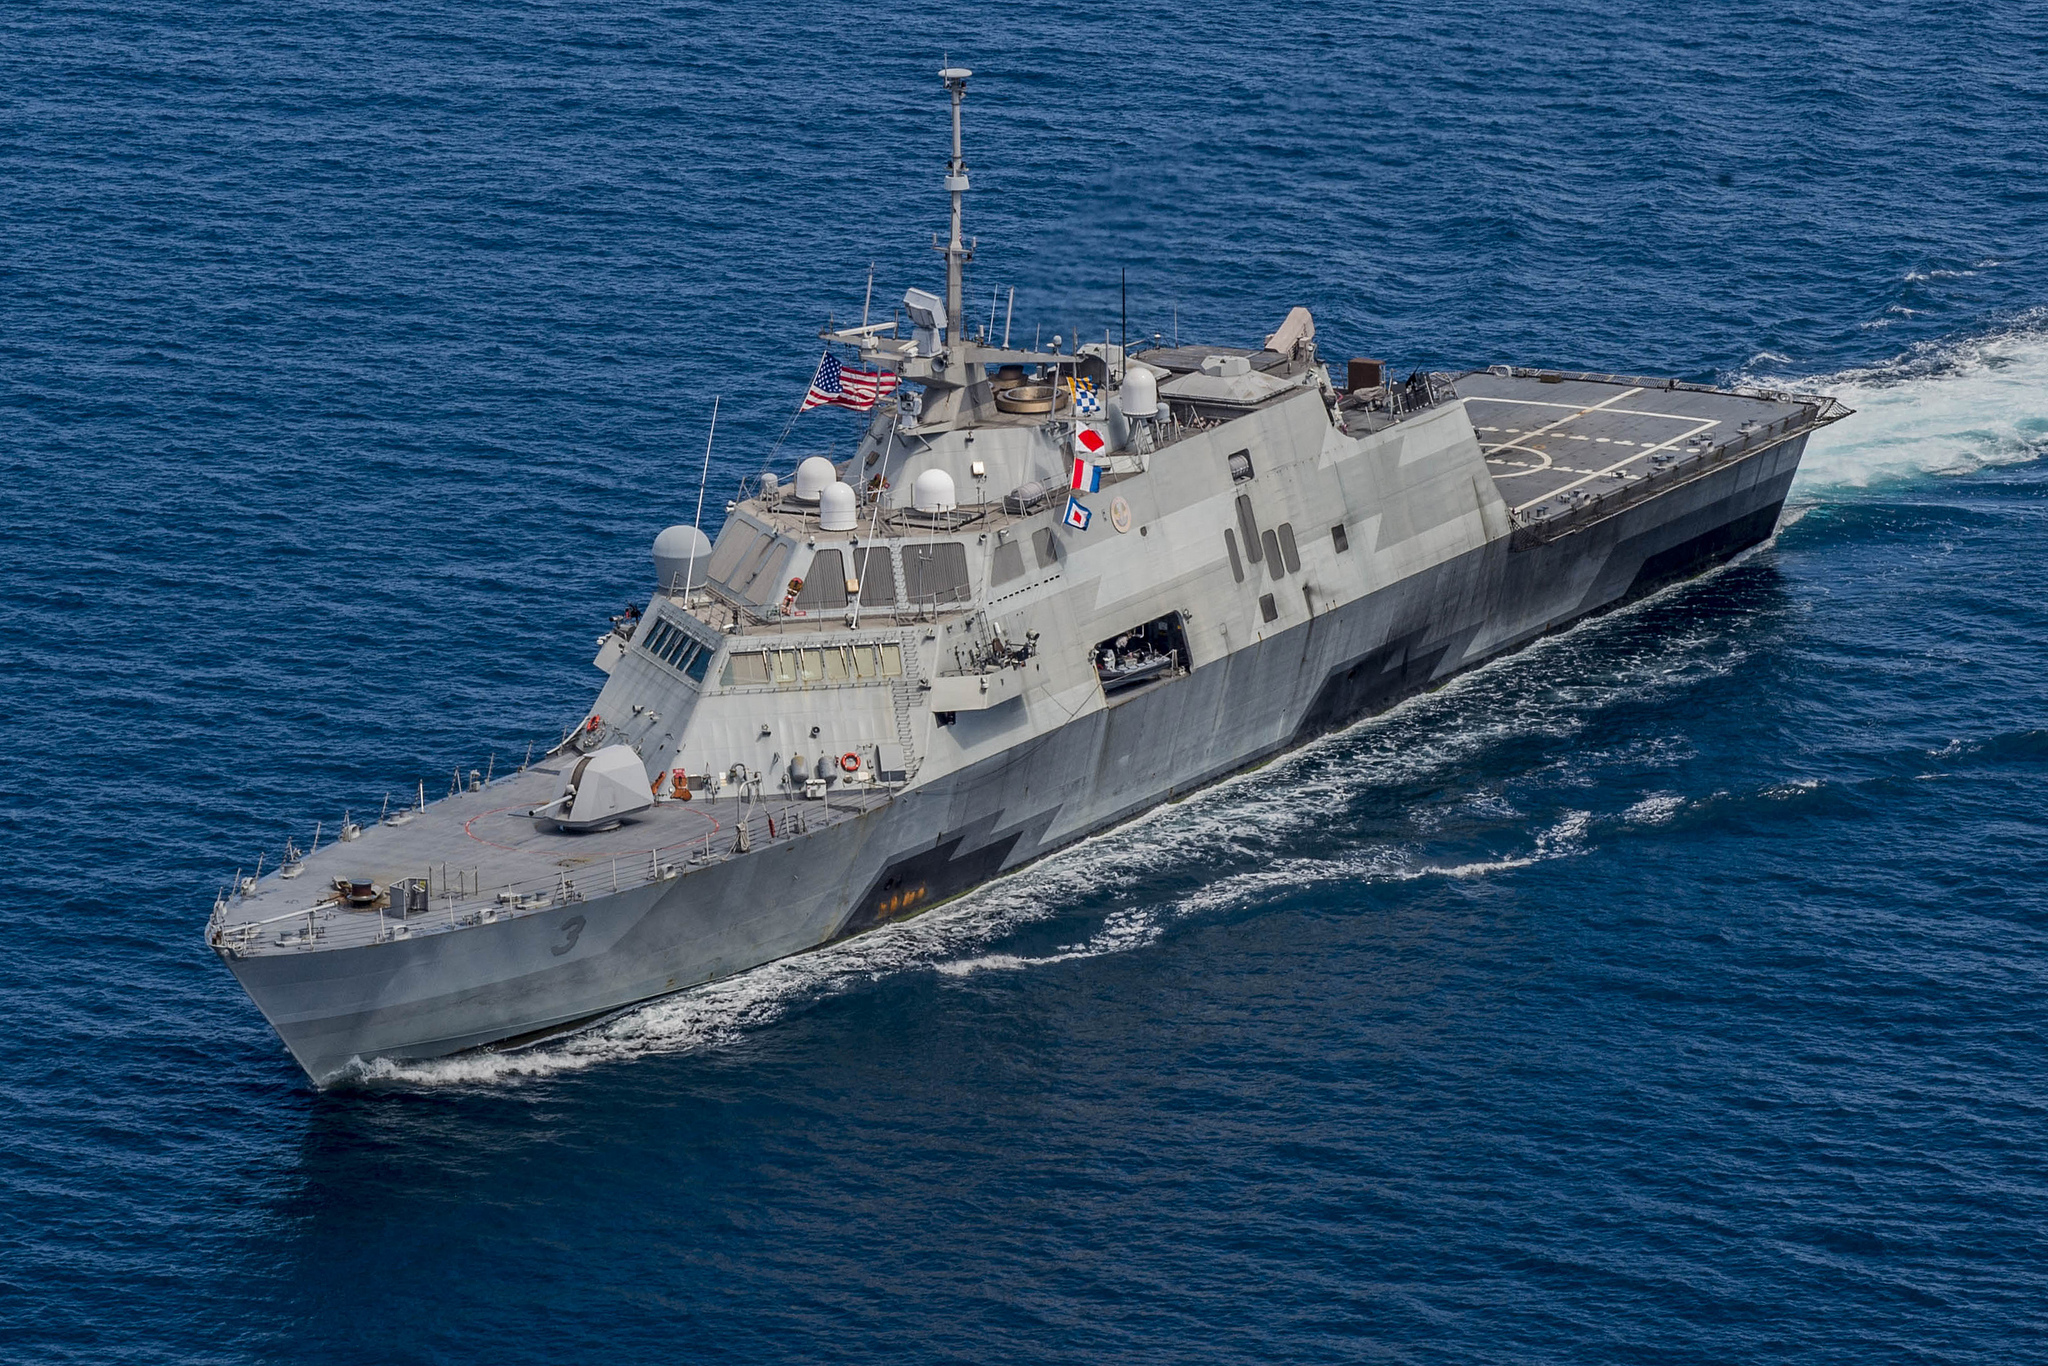 USS FORT WORTH LCS-3 am 19.08.2015 in der Sulu-See Bild: U.S. Navy